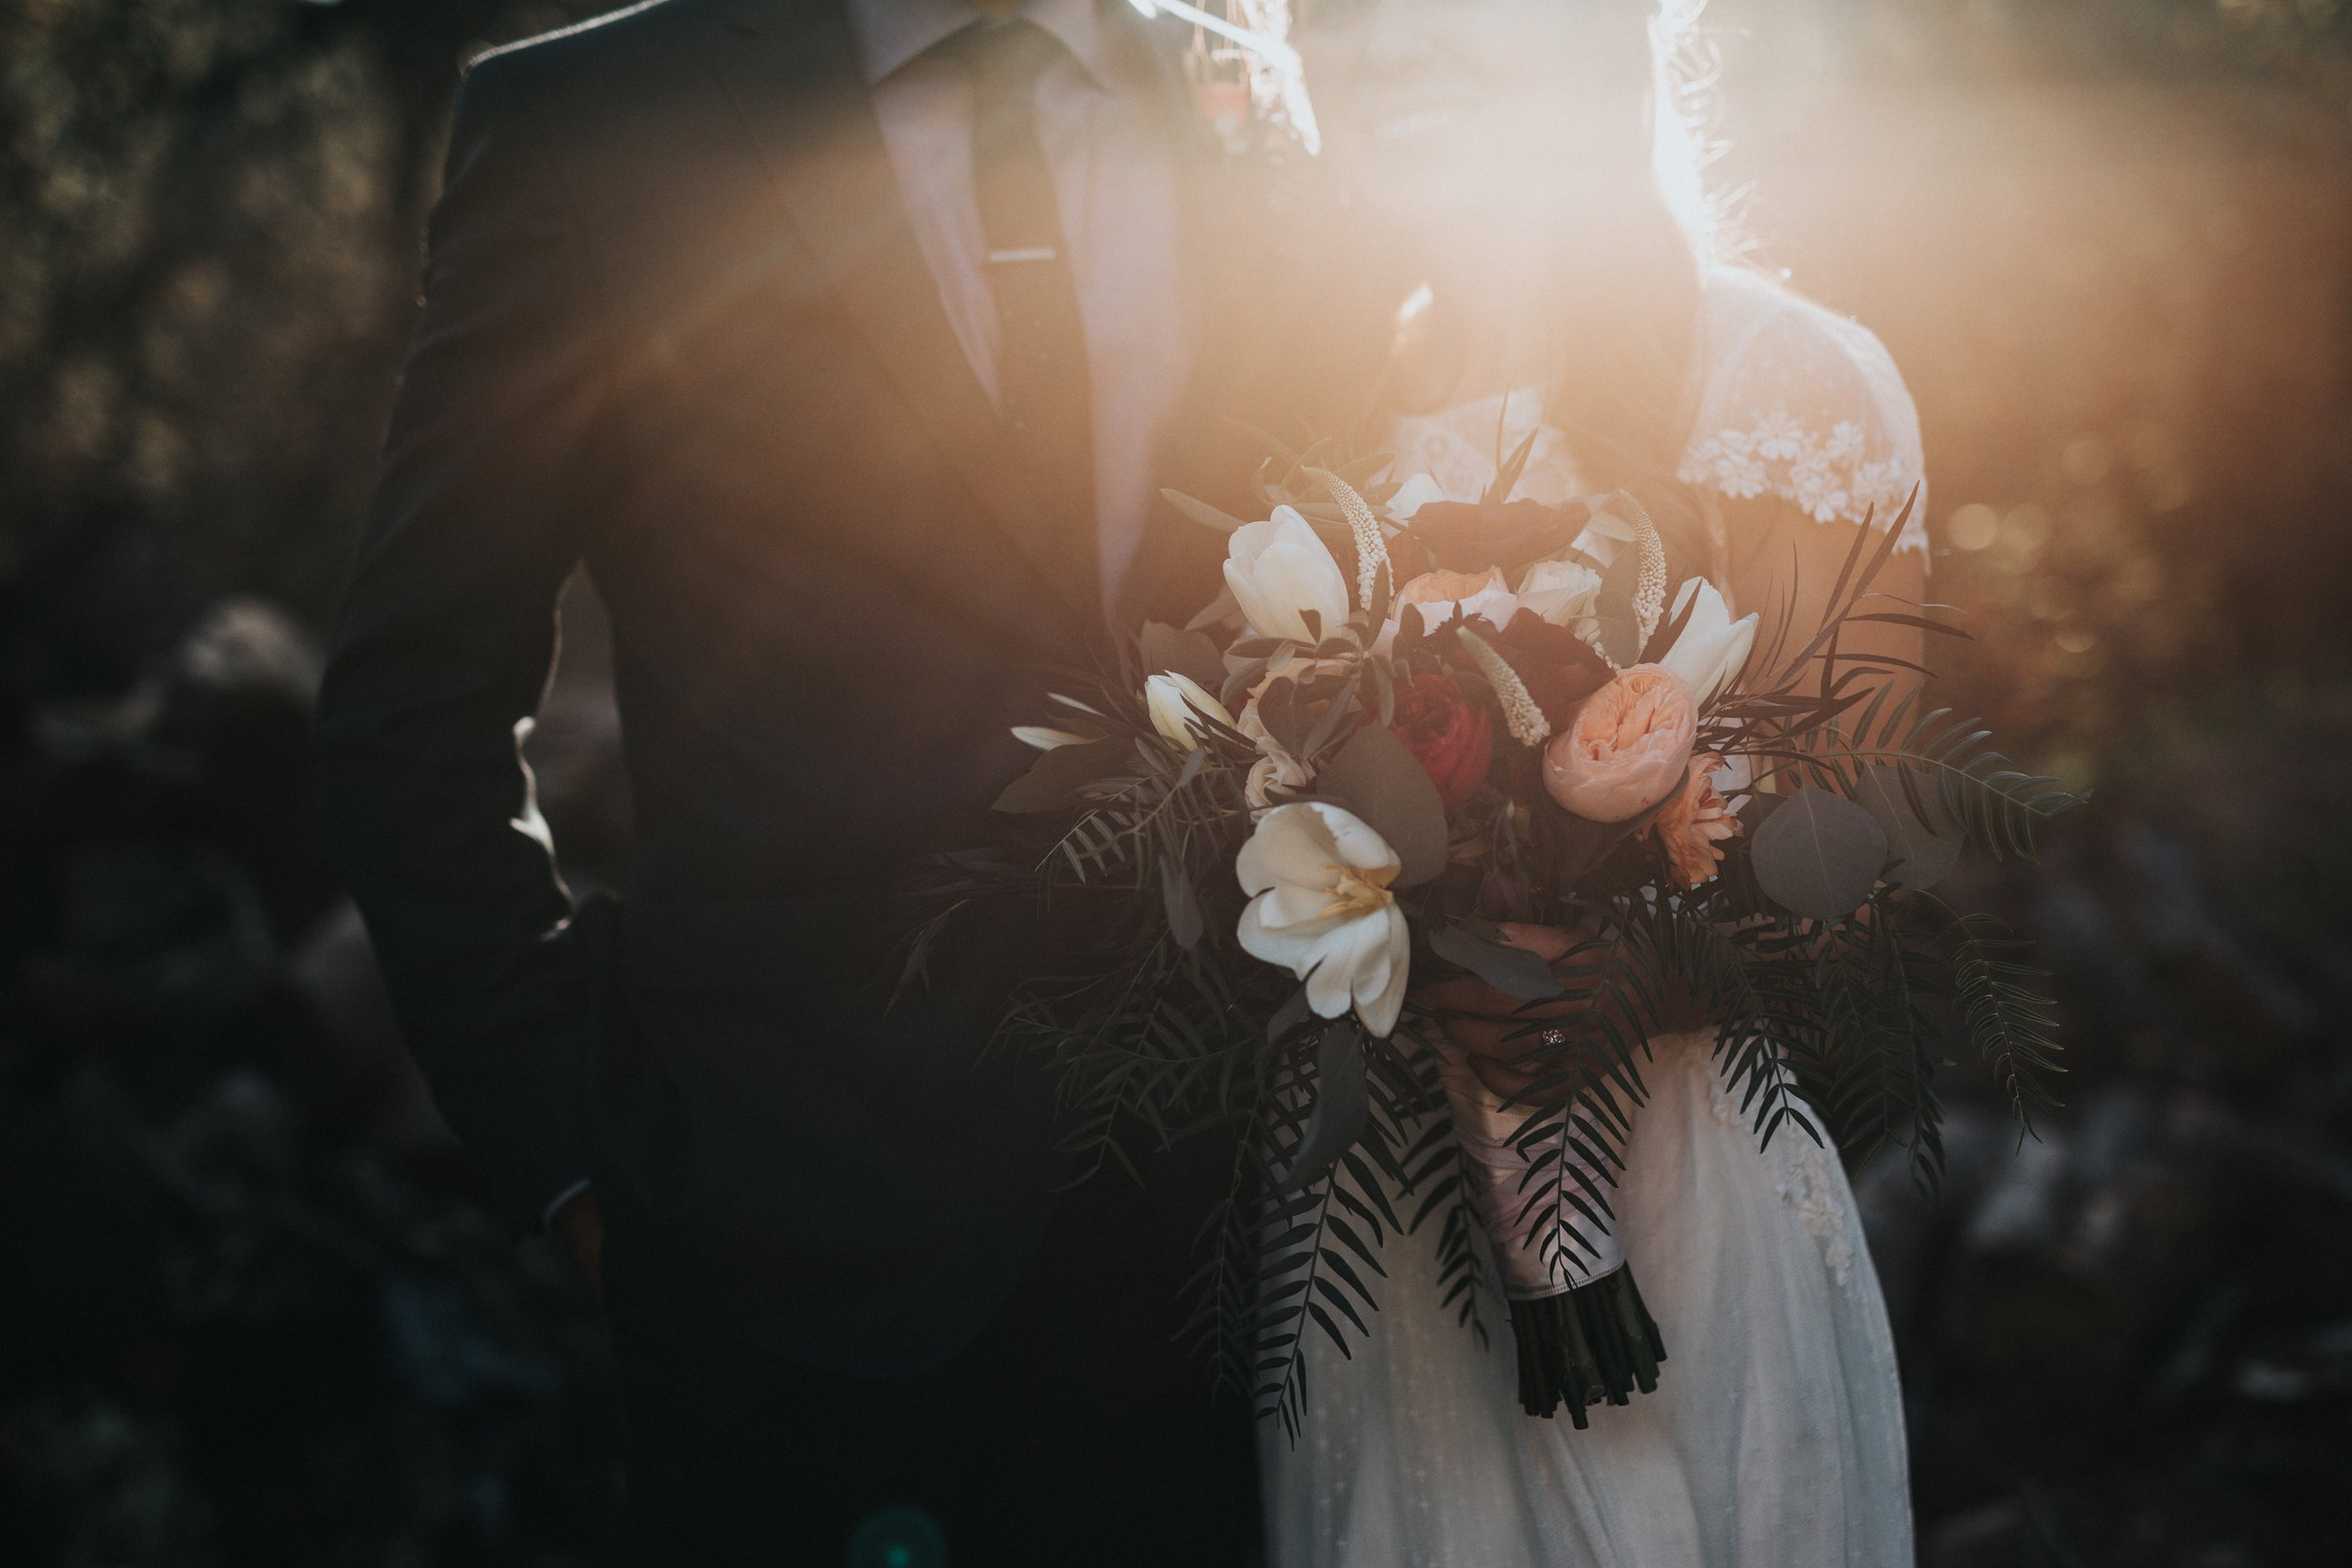 3. Wedding Dress & Suit - We will give you insight into what makes a wedding dress and suit vegan & where to go to find them.